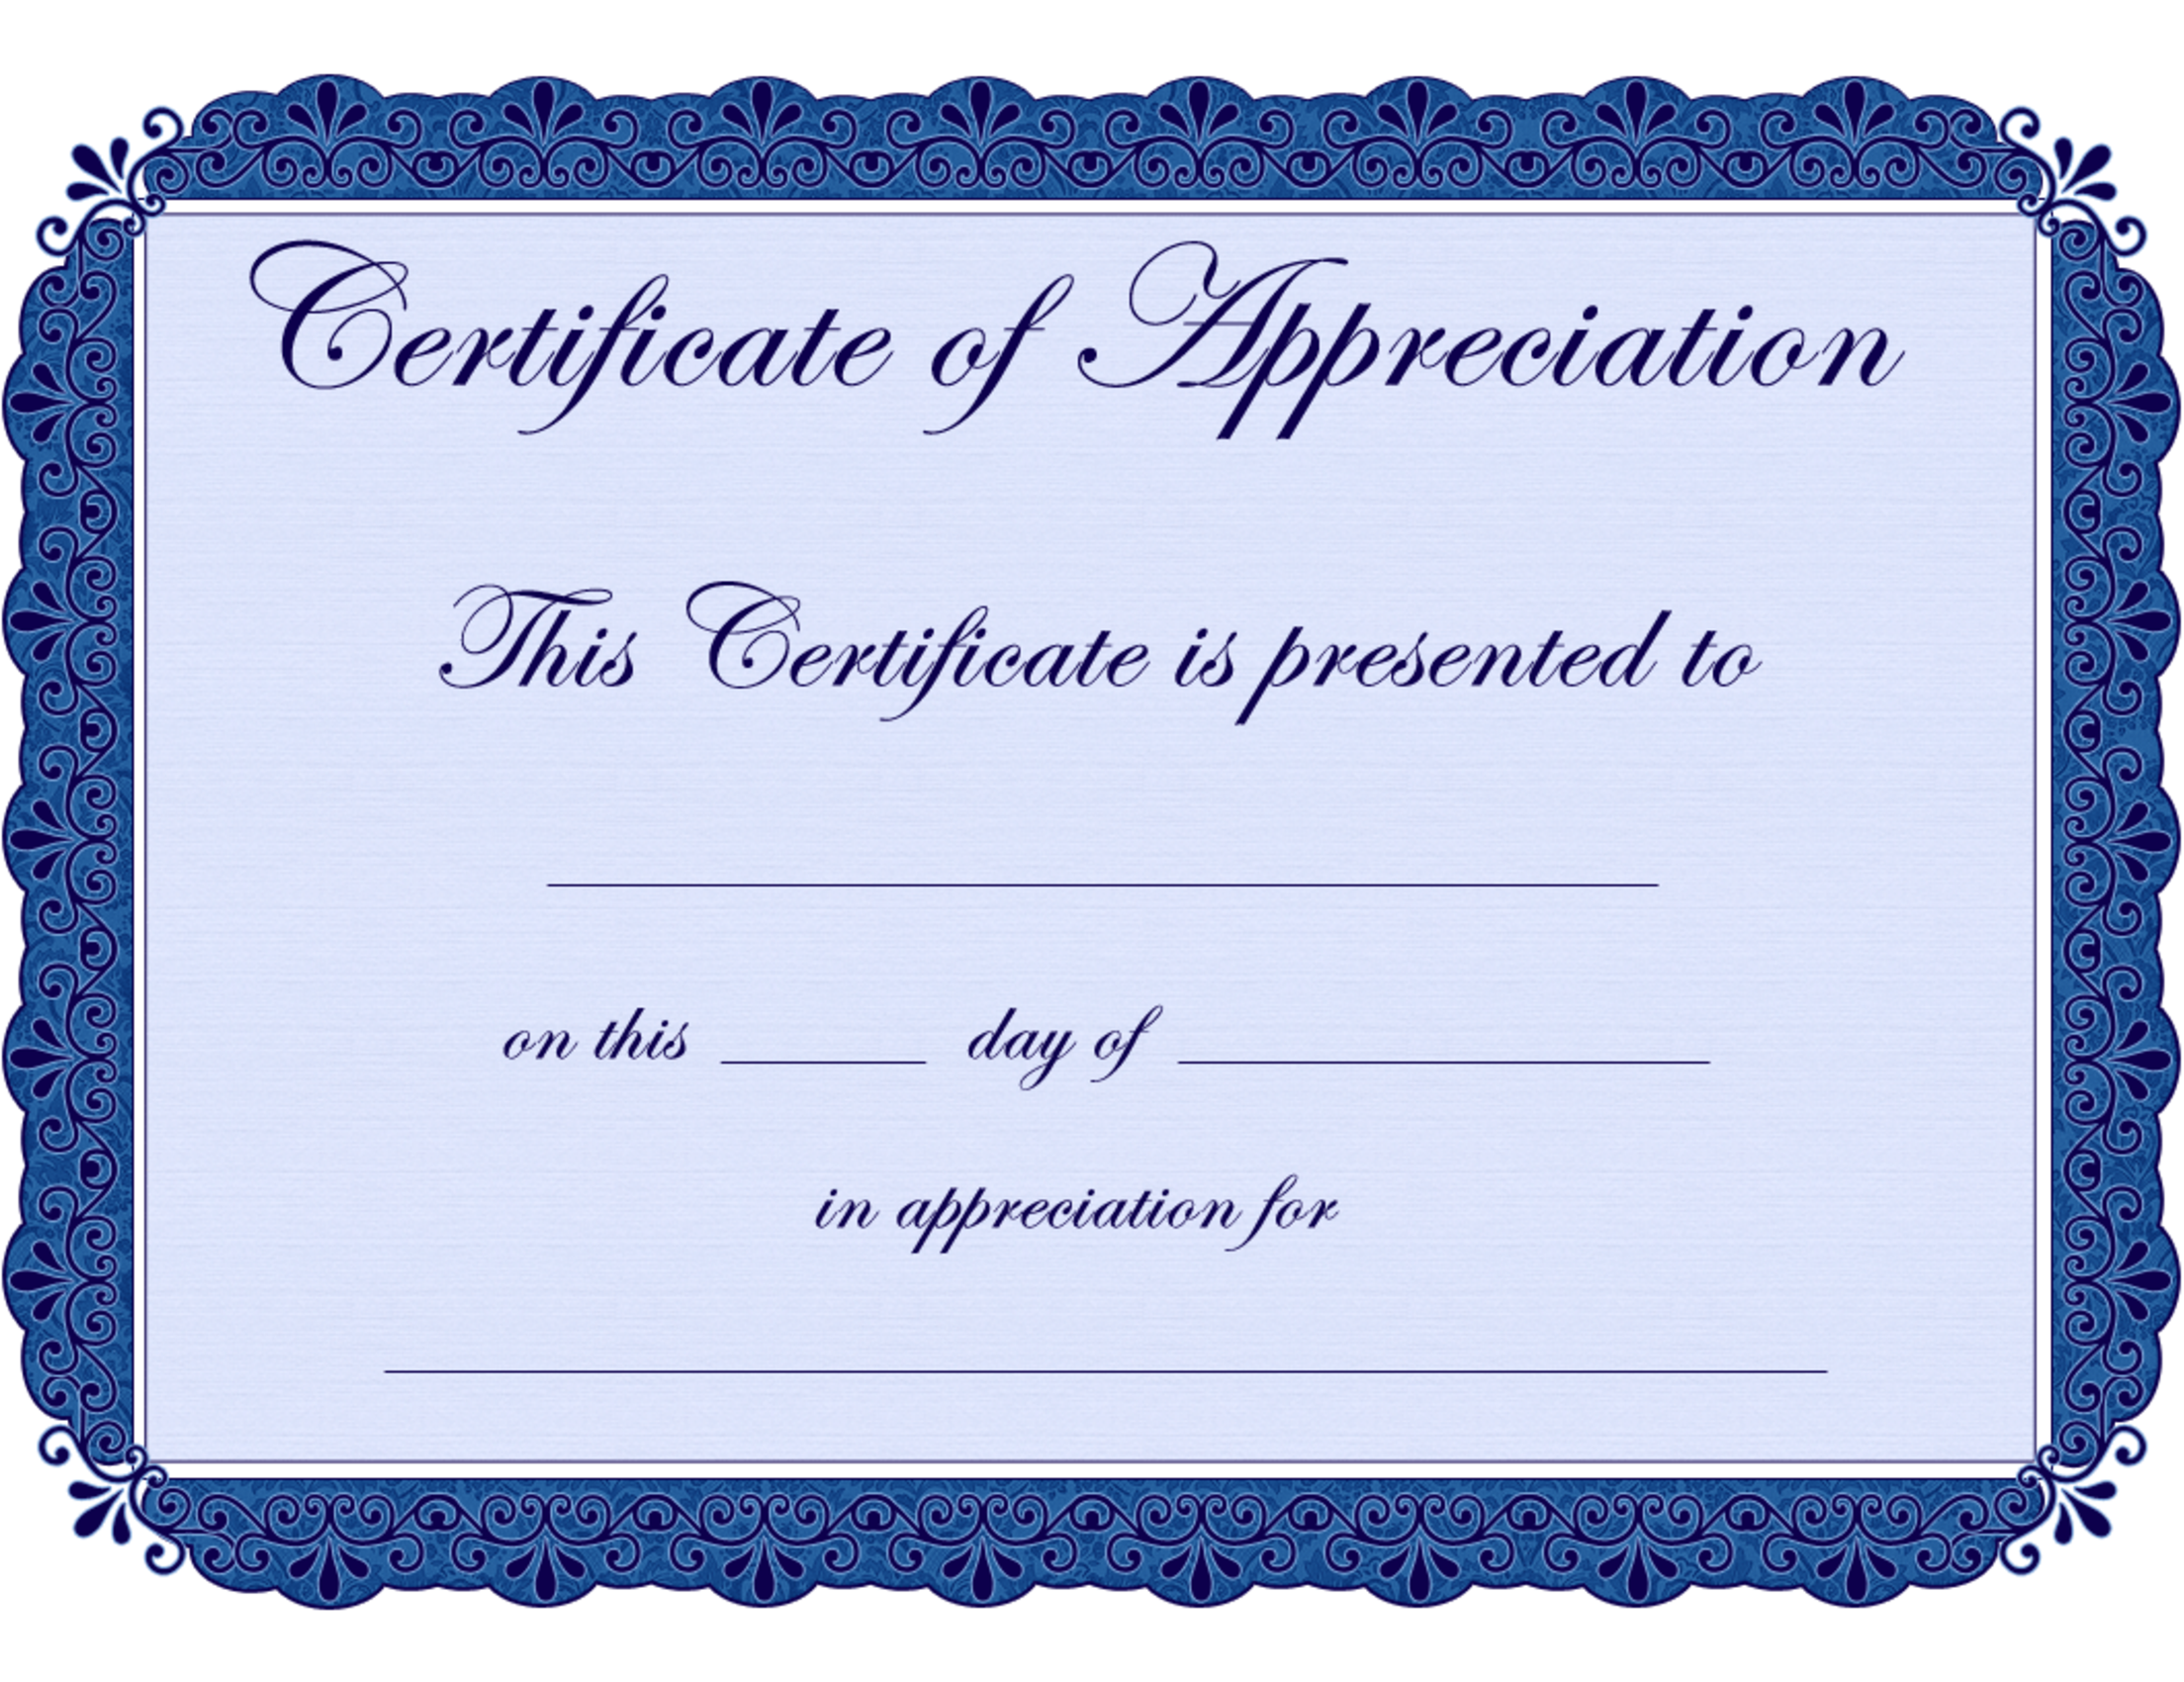 Superior Free Printable Certificates Certificate Of Appreciation Certificate ... |  Certificate Of Appreciation | Pinterest | Free Printable Certificates, ... Regarding Certificate Of Appreciation Template For Word